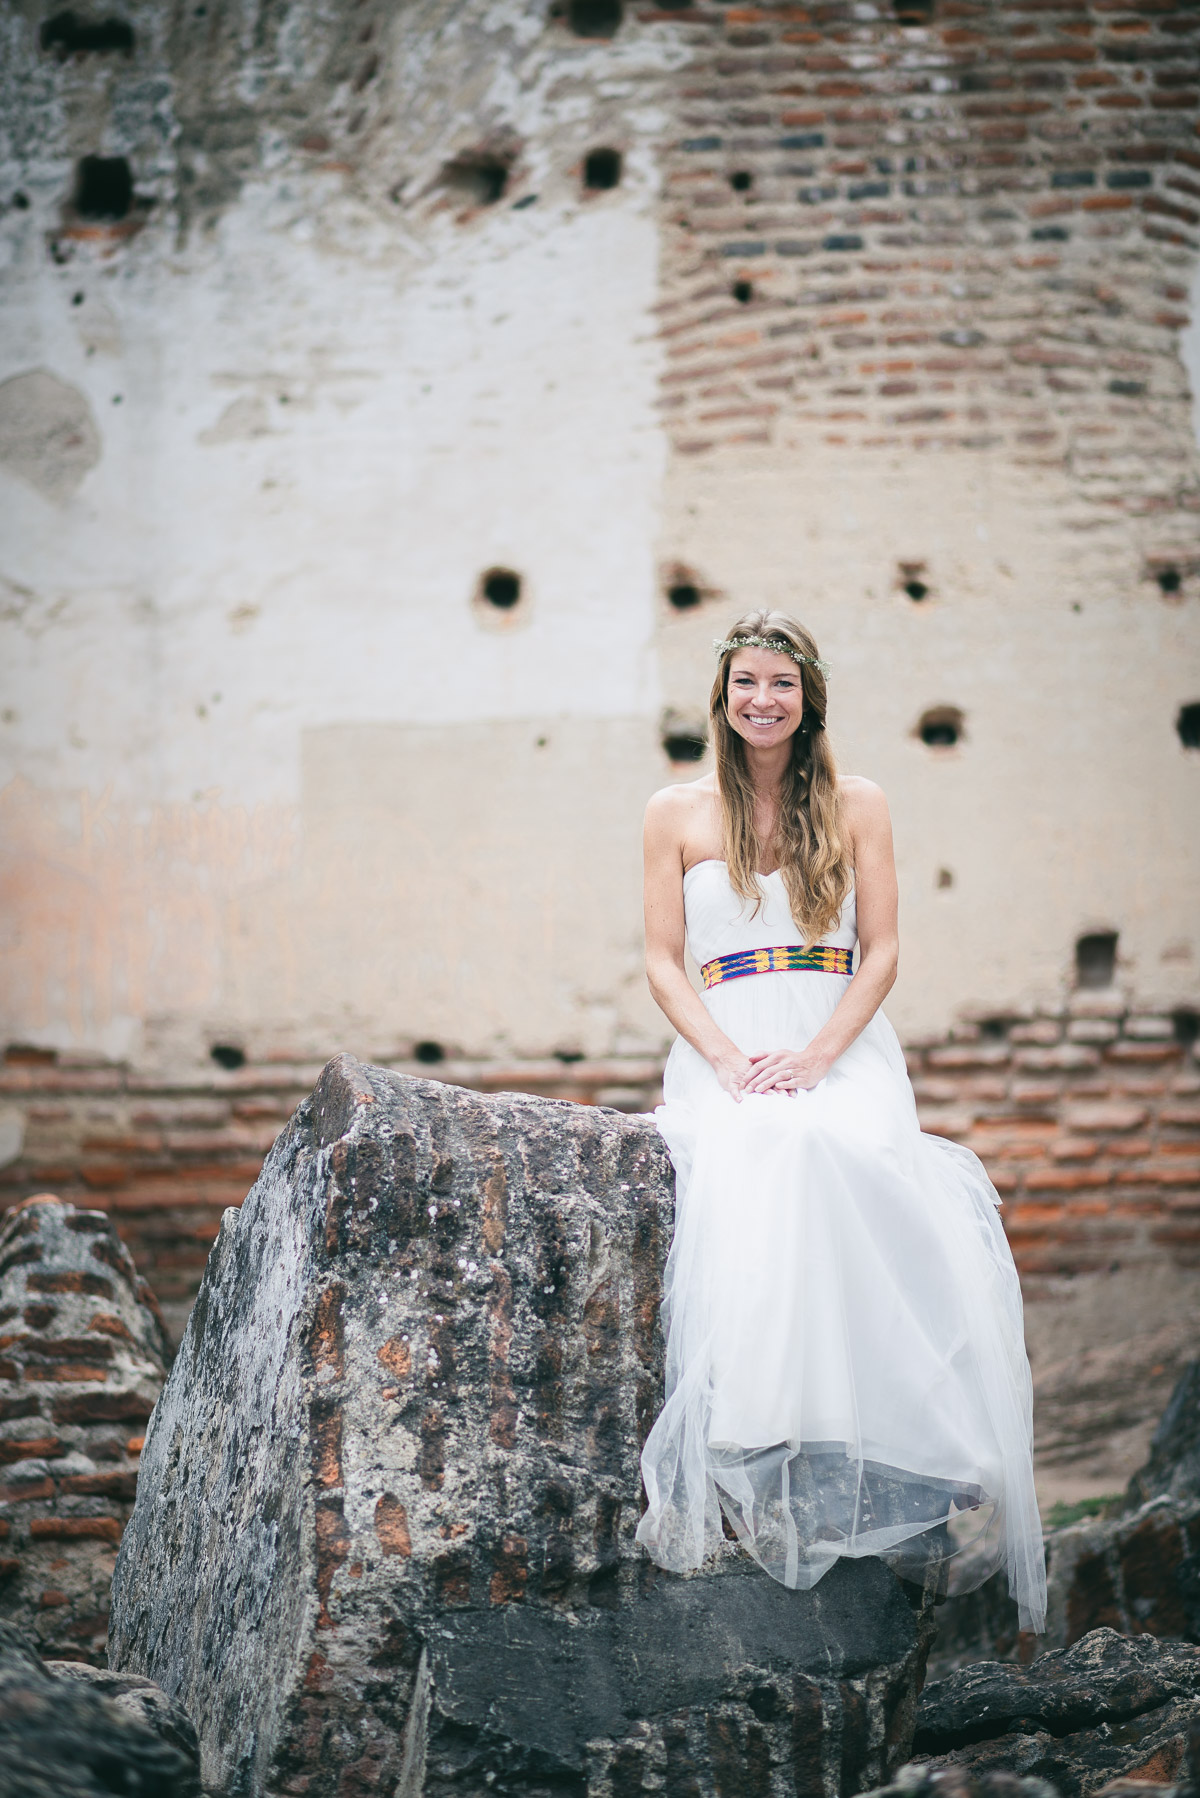 wedding photographer antigua guatemala 007 2